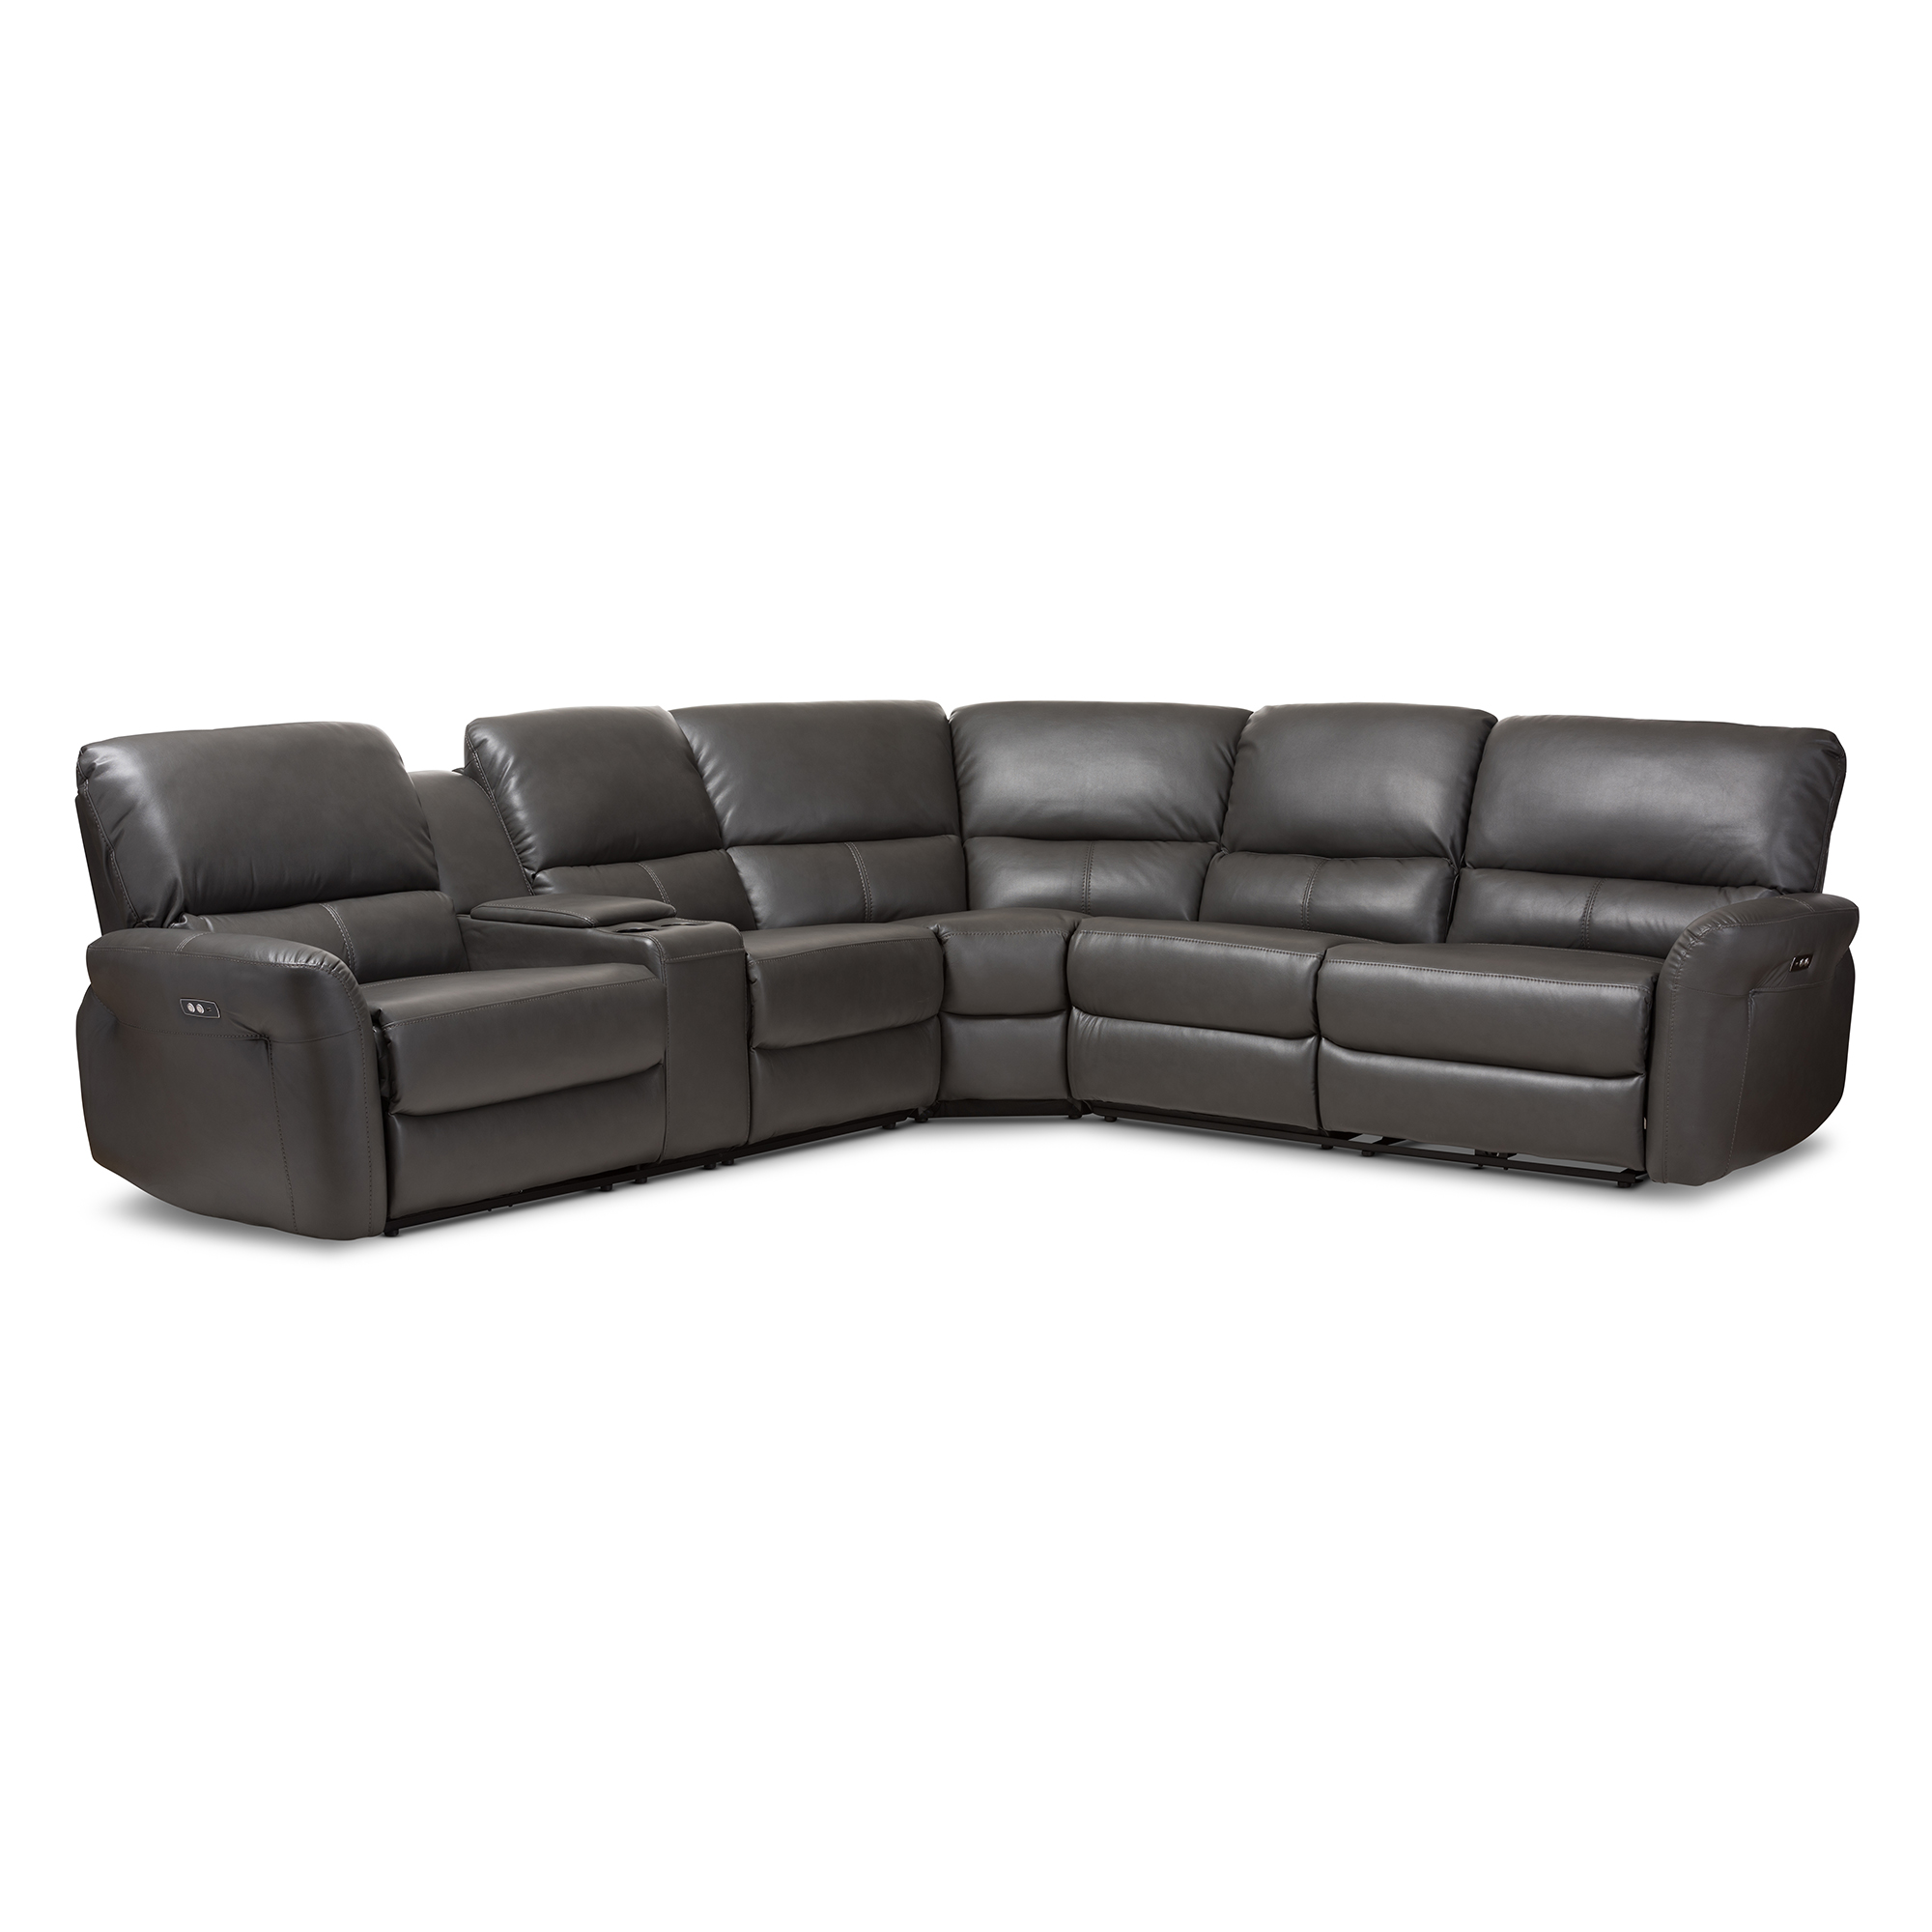 baxton studio amaris modern and grey bonded leather 5piece power reclining sectional sofa